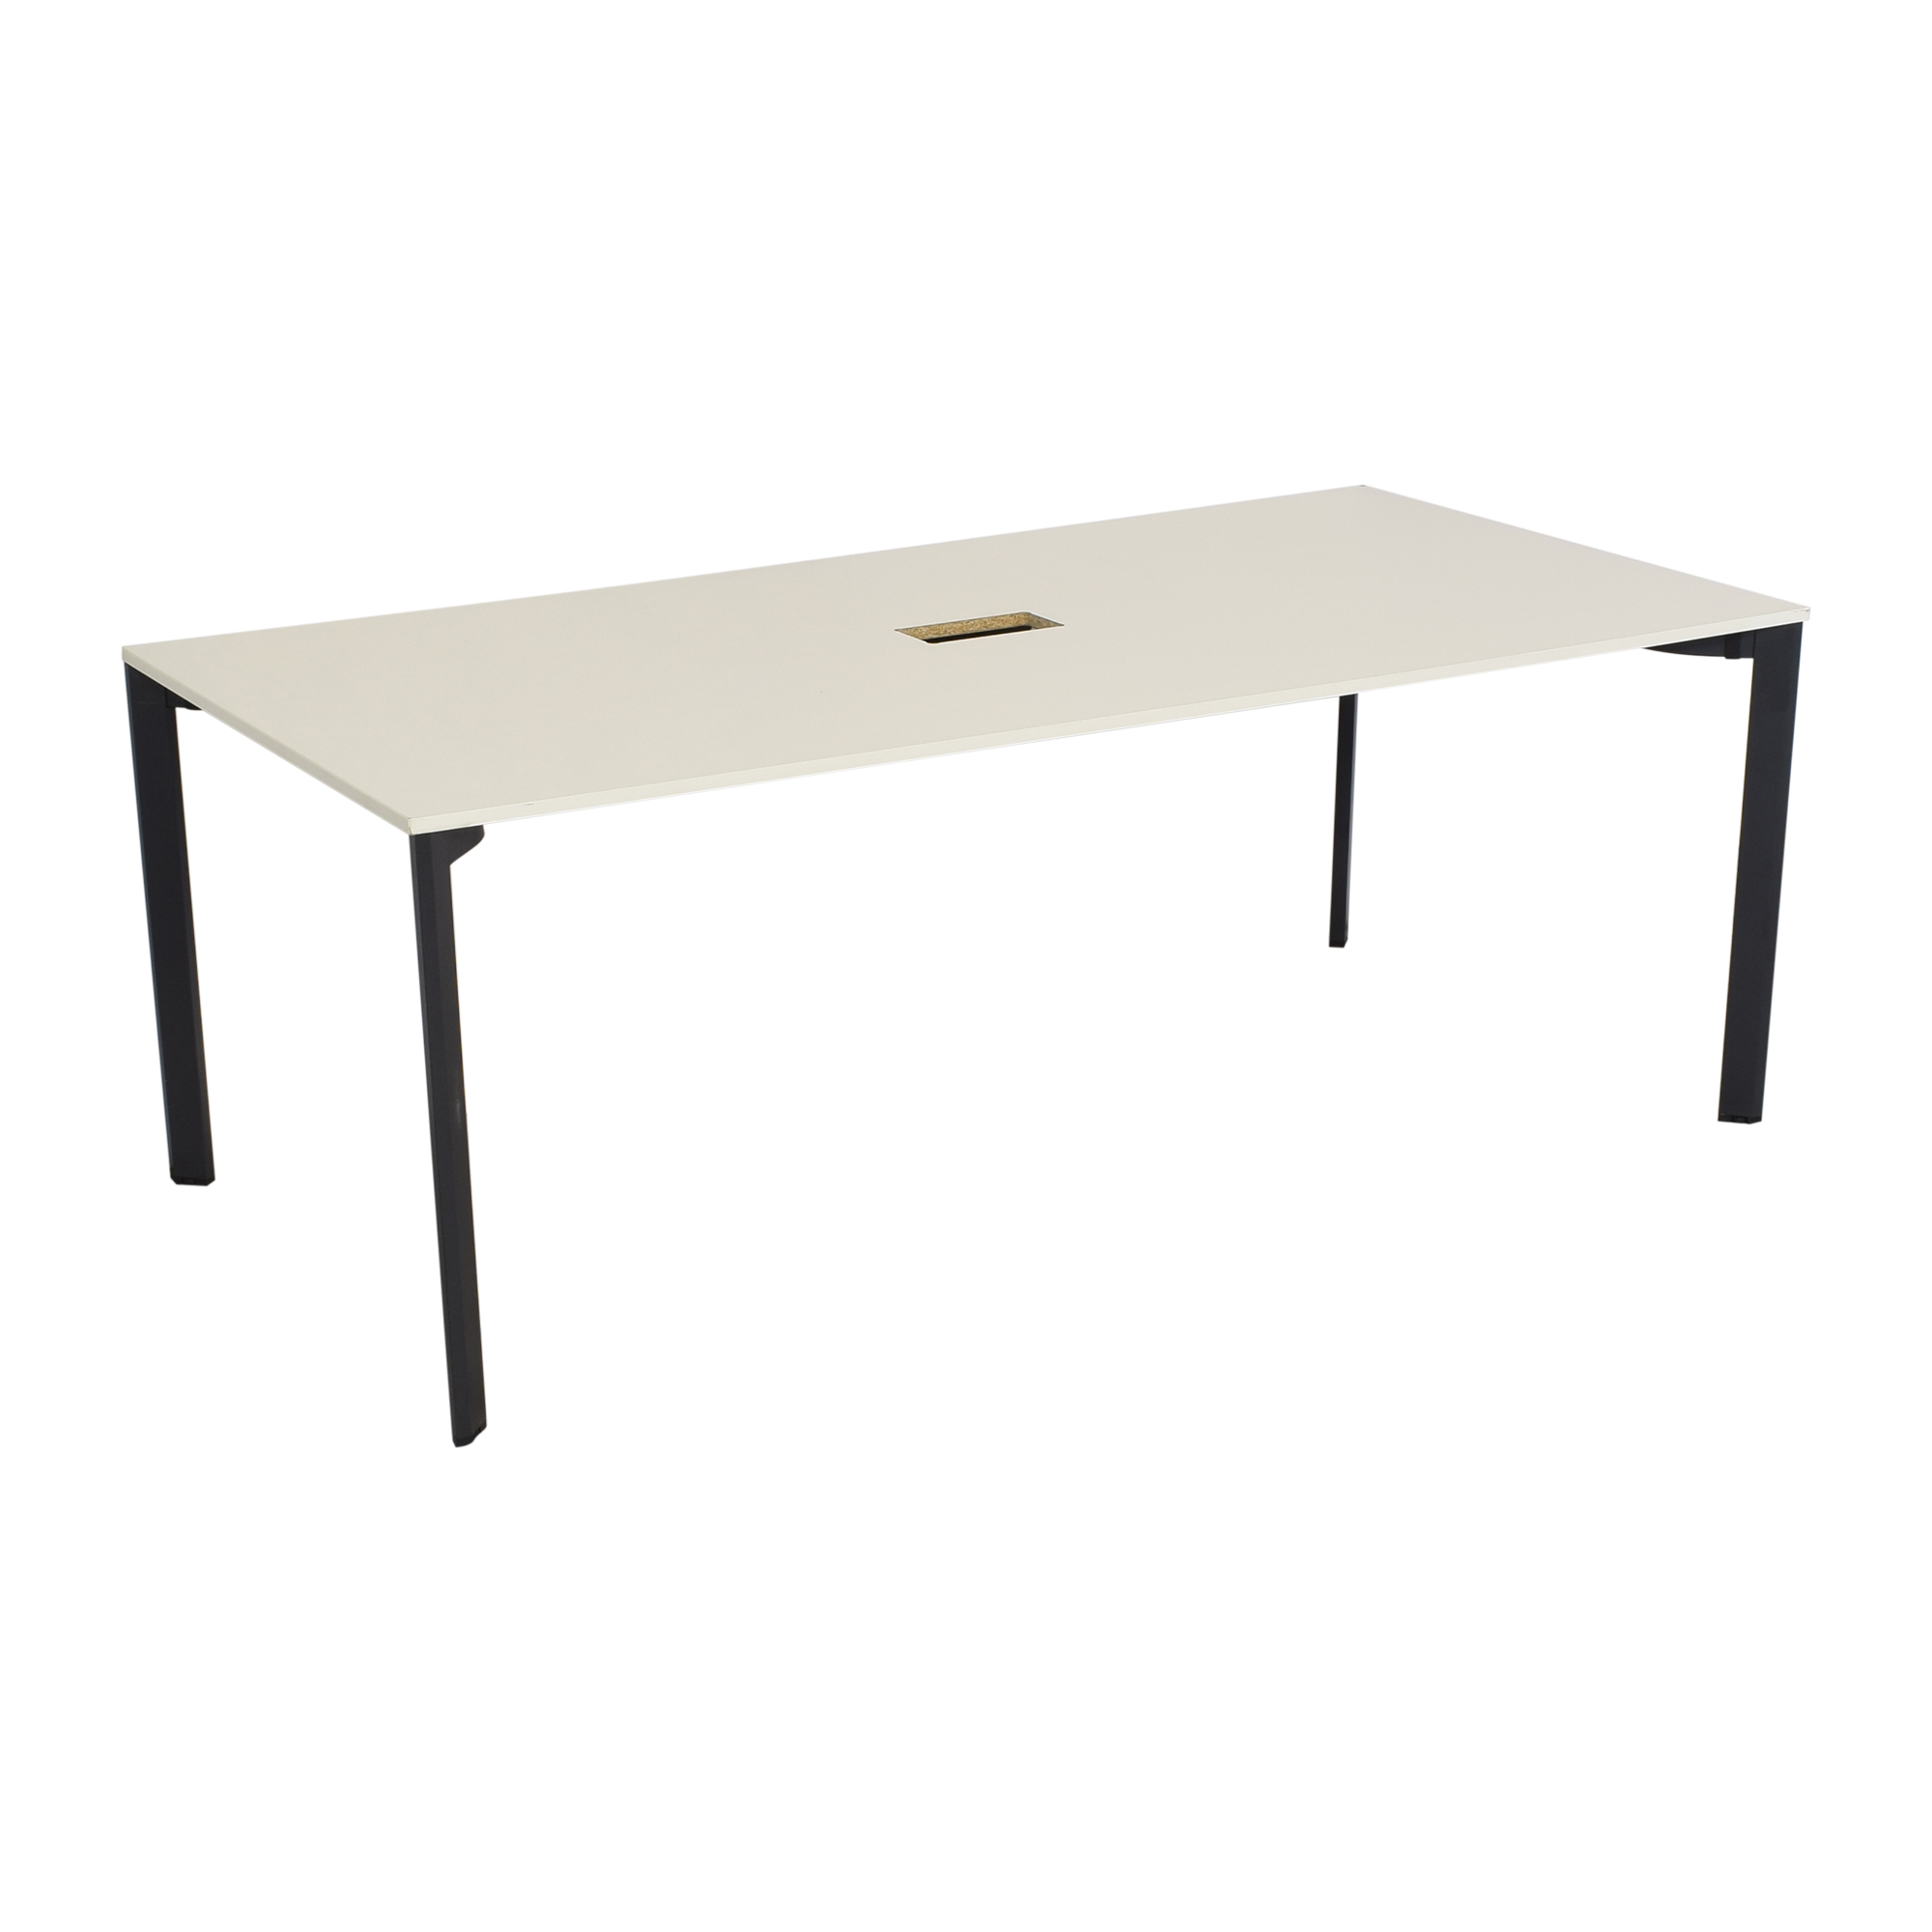 Koleksiyon Koleksiyon Desk System Table pa